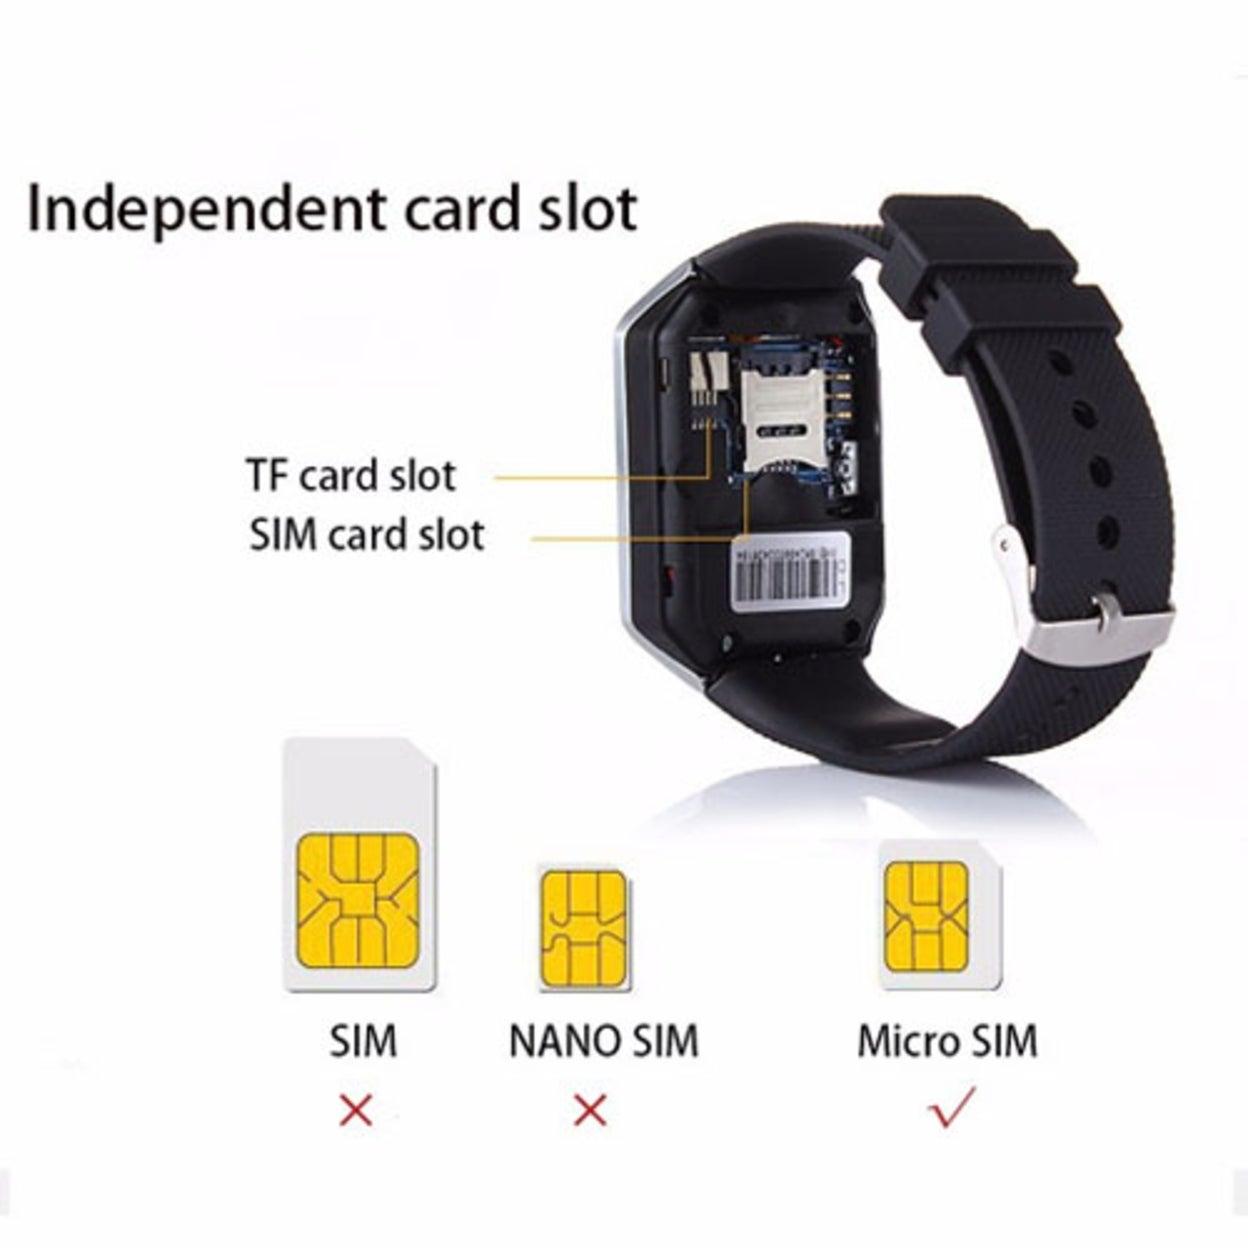 7db05a38c Shop Multifunctional Bluetooth Smart Watch for Android and iPhone - Free  Shipping On Orders Over  45 - Overstock - 19967143